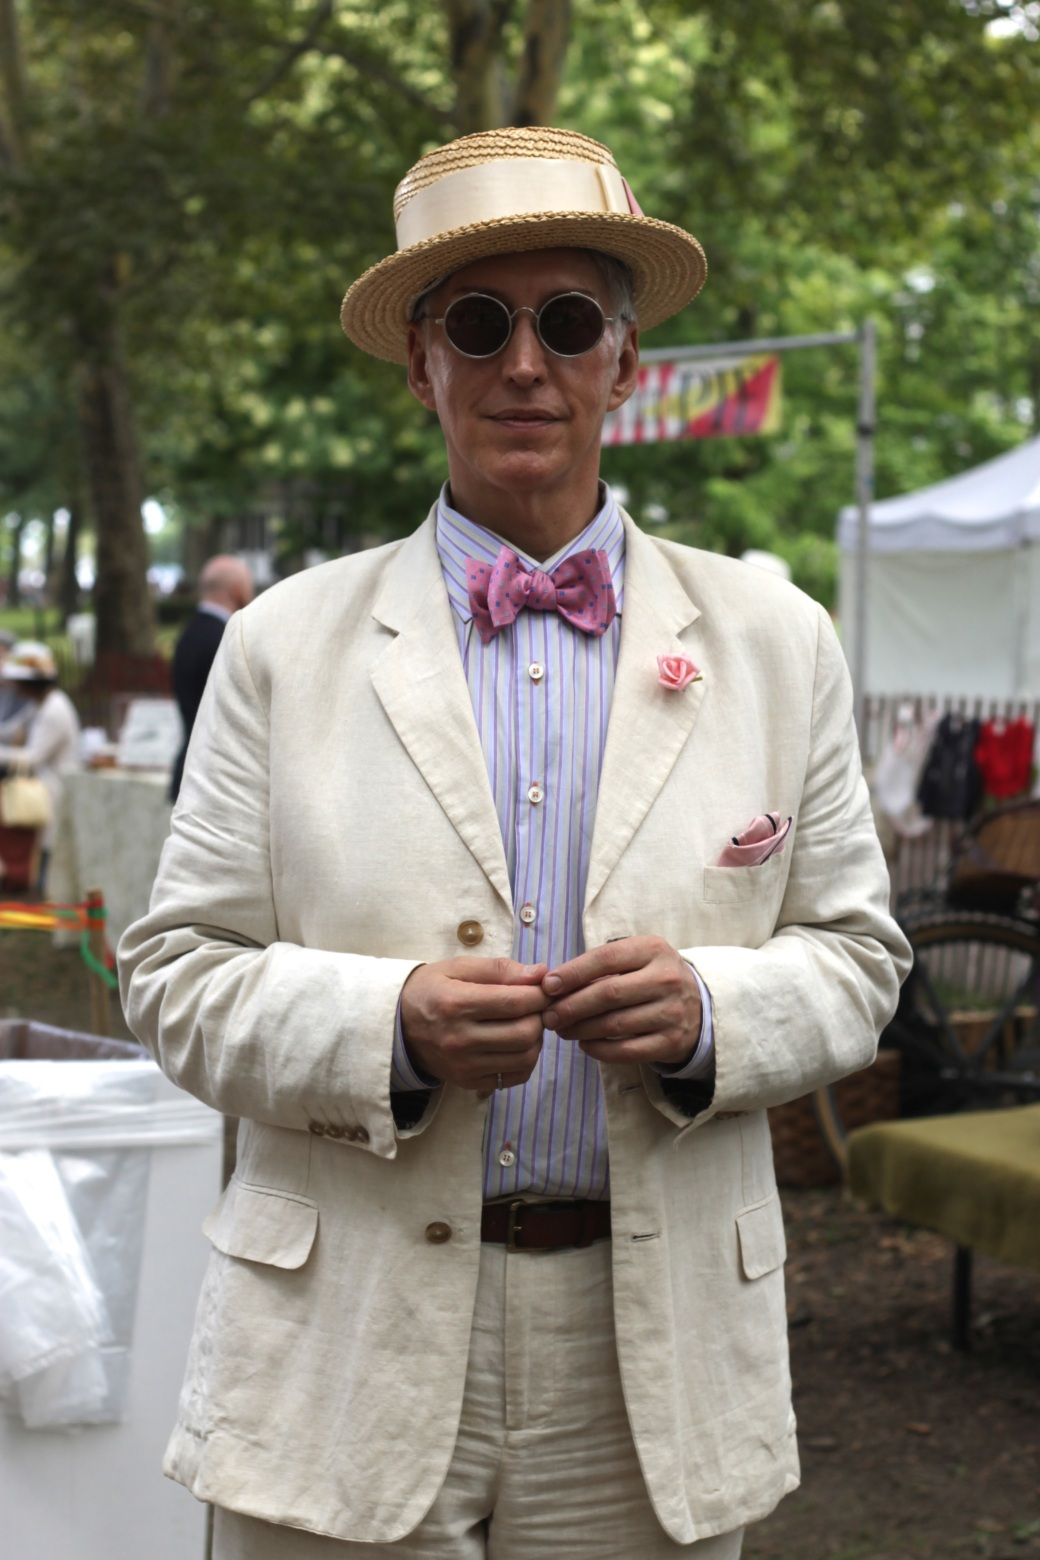 new york city governors island jazz age lawn party august 17 2014 16